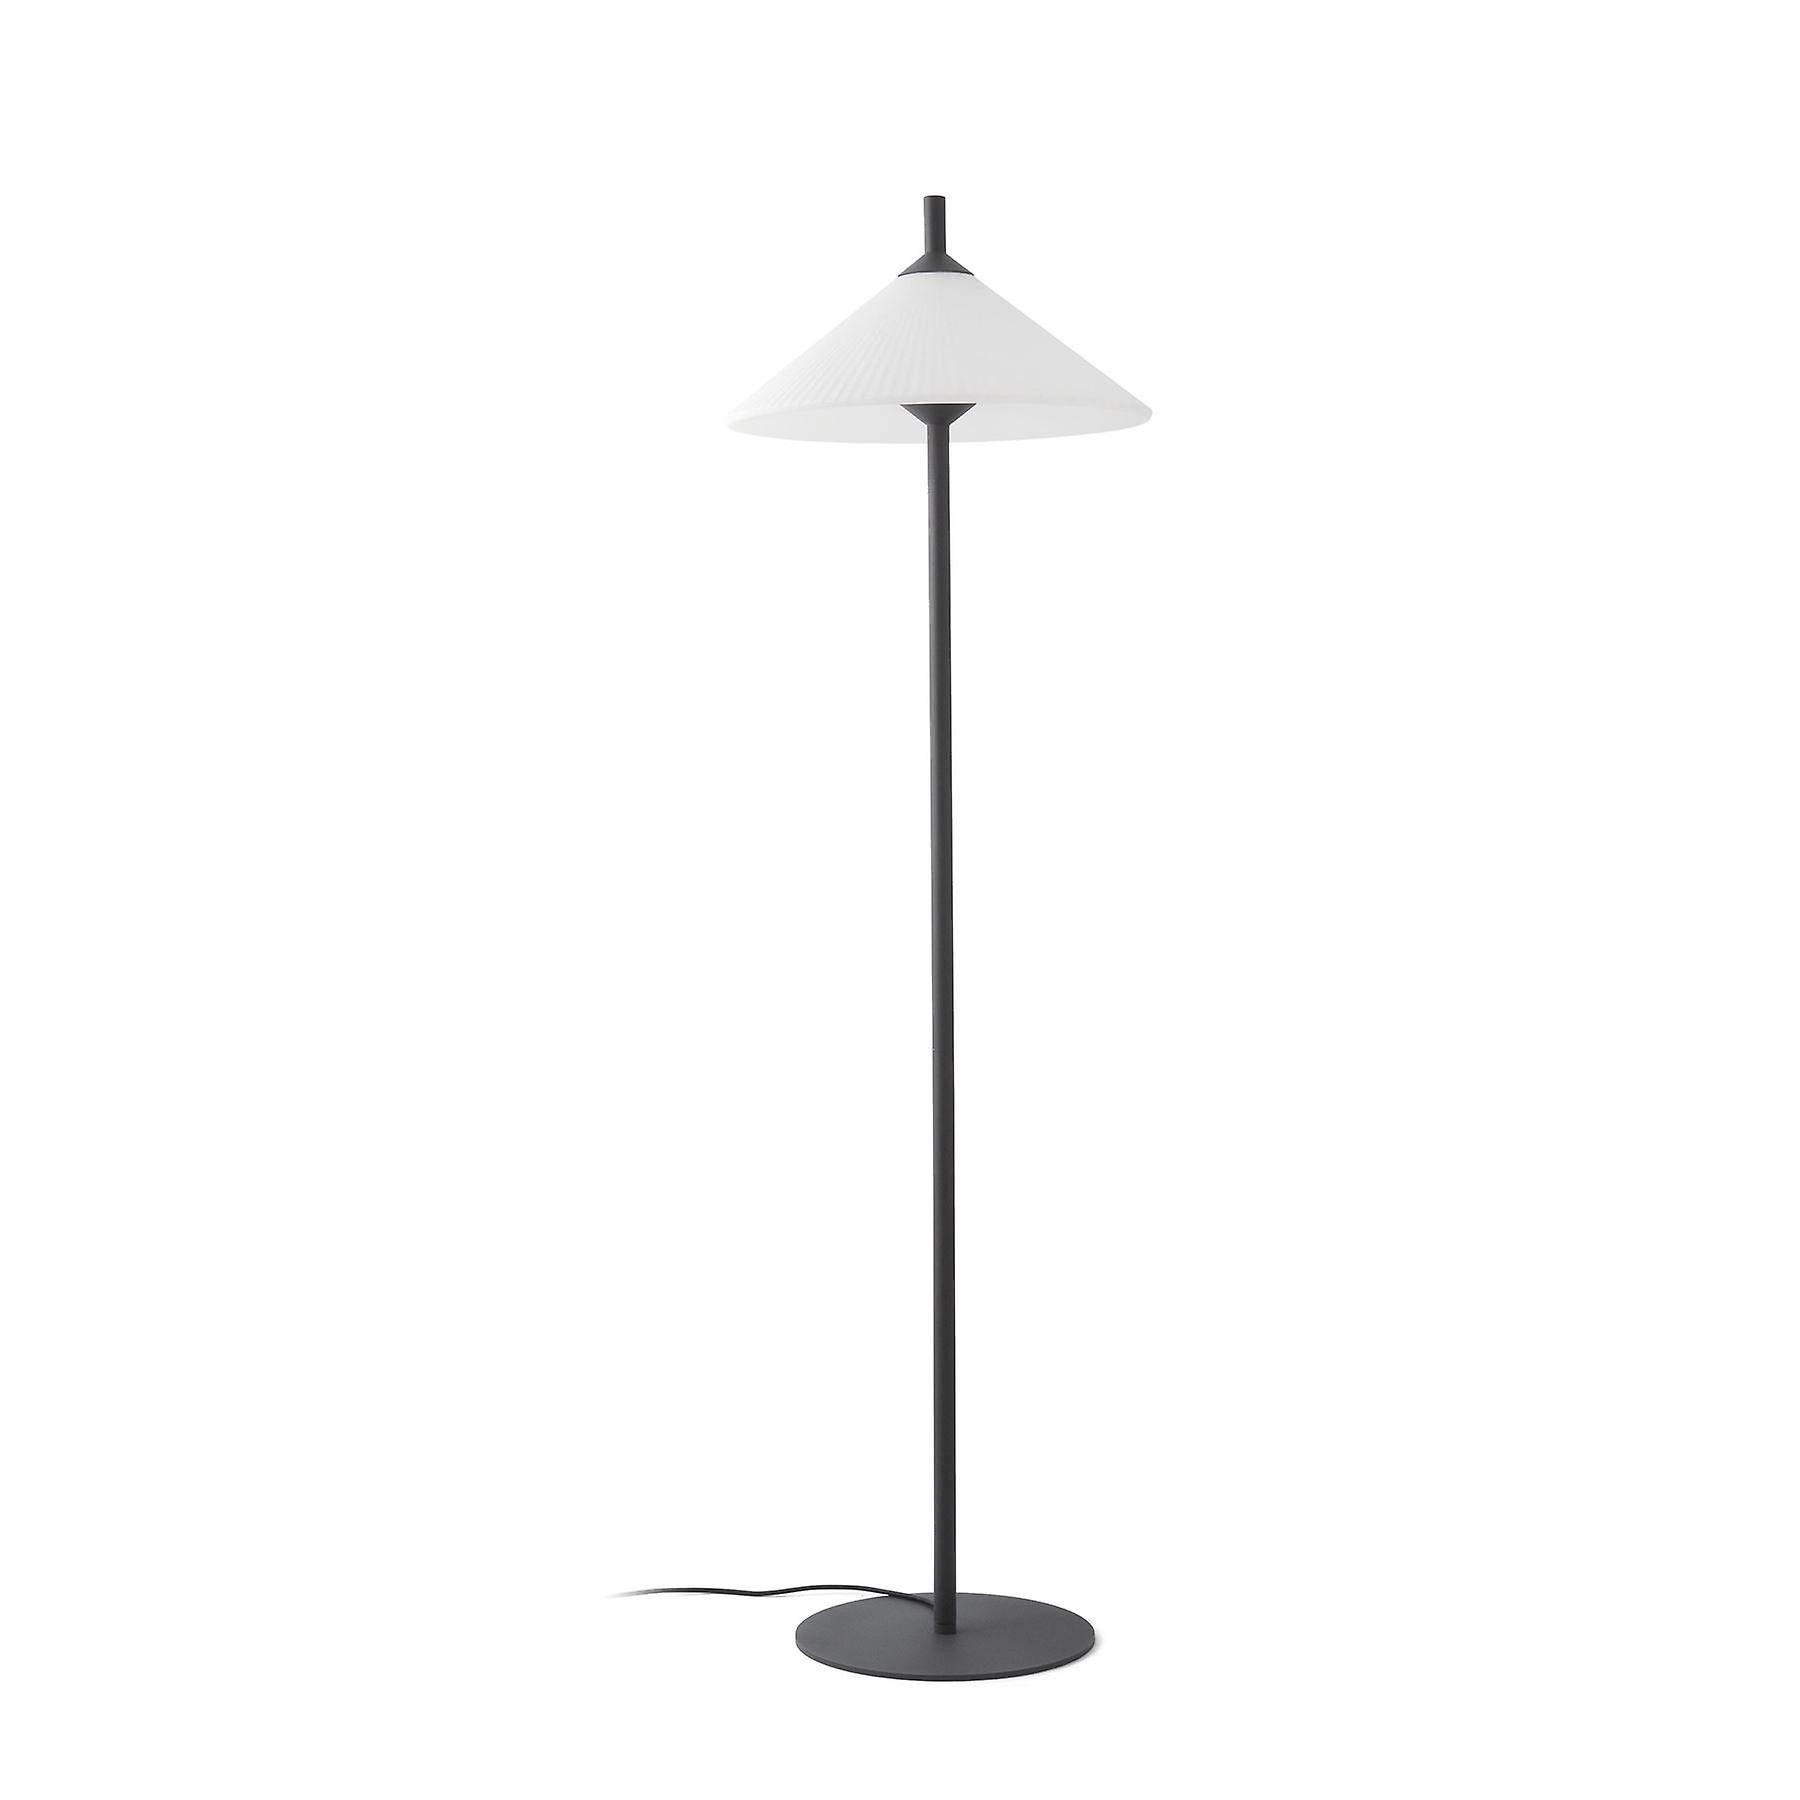 Faro - Hue gris And blanc Tall Outdoor Floor Lamp FARO71567